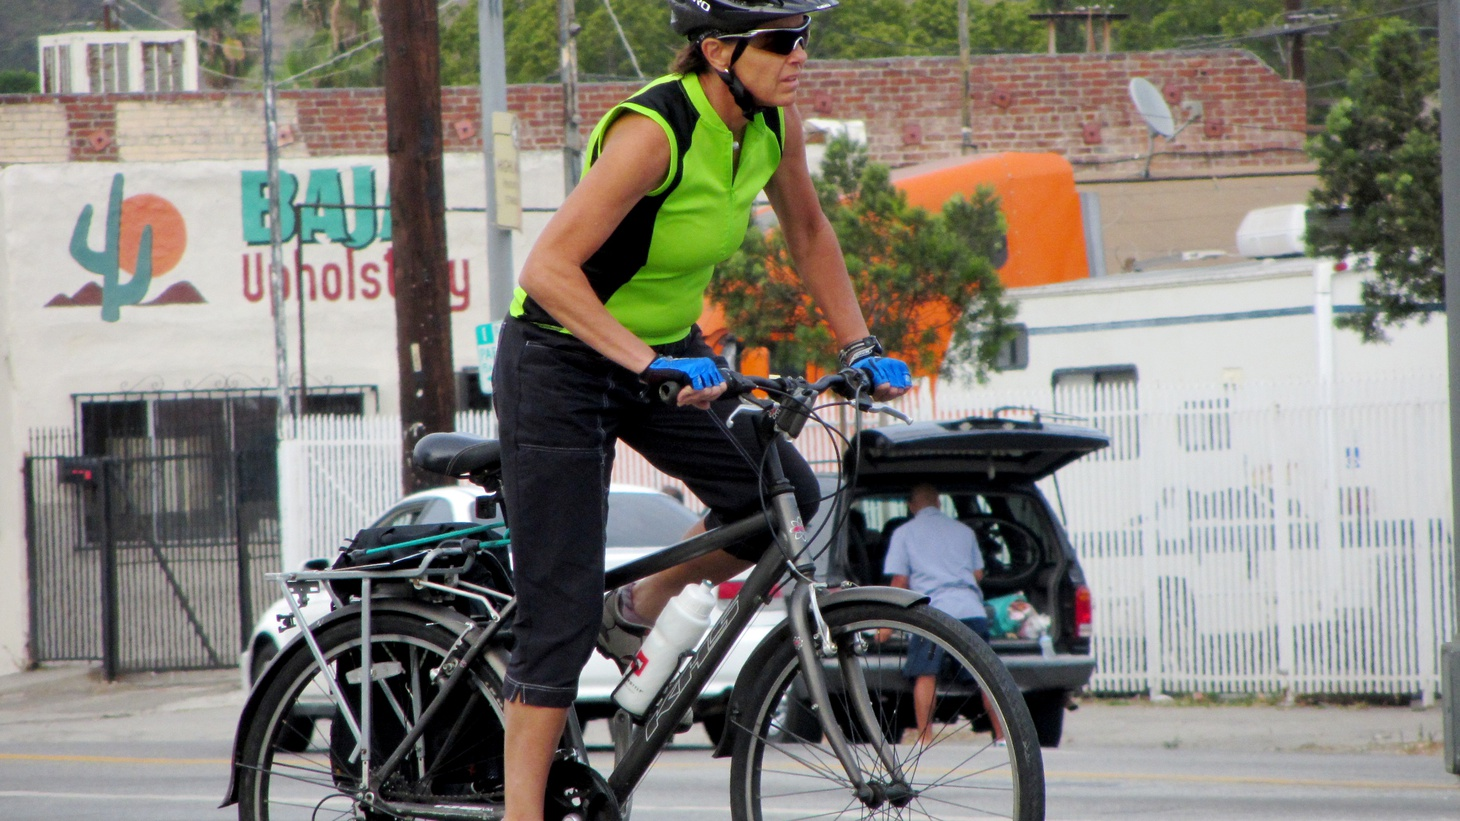 Riding a bike in metropolitan traffic can be taking your life in your hands. But a new rule for the roads of California went into effect this week: Motorists have to give cyclists a three-foot buffer zone. But how will it be measured? How will the law be enforced?